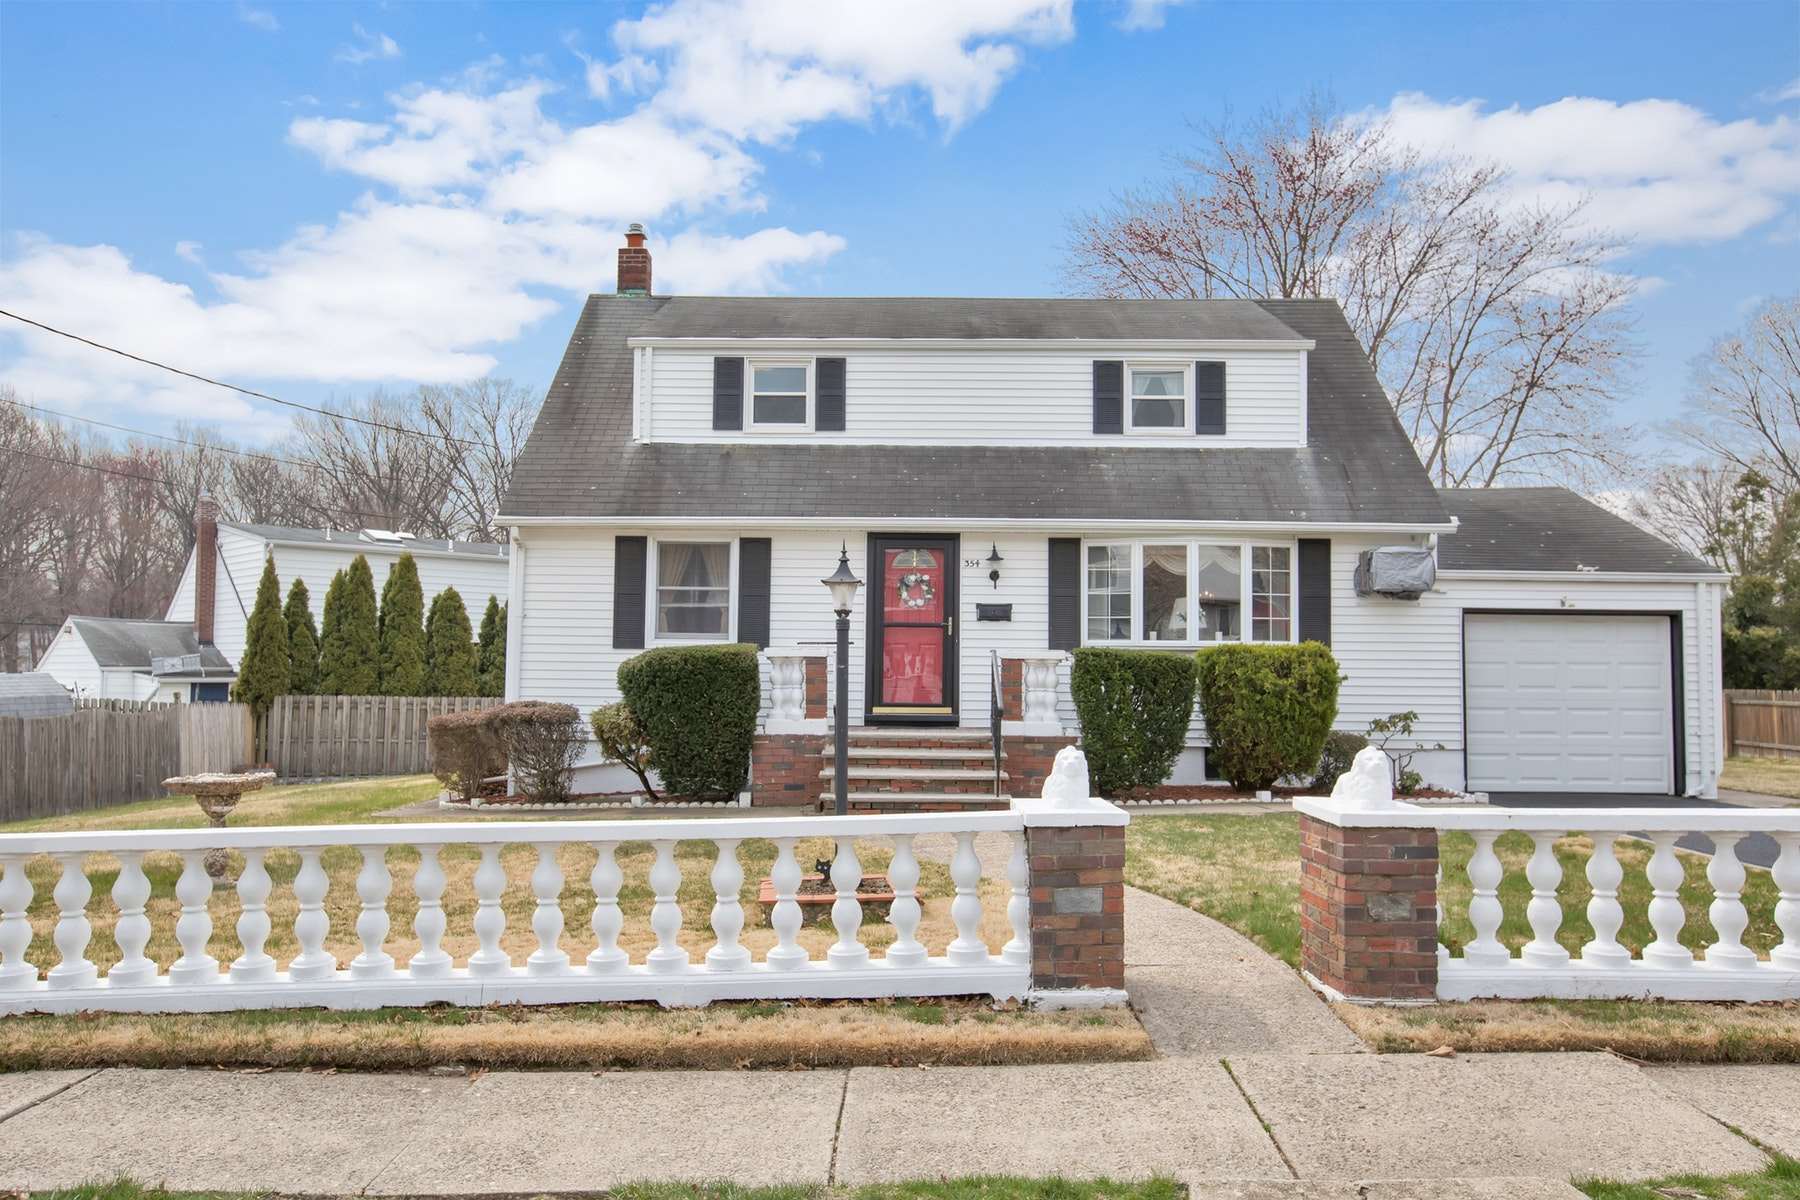 Single Family Home for Sale at Immaculate Cape Cod 354 E Woodland Rd, New Milford, New Jersey 07646 United States